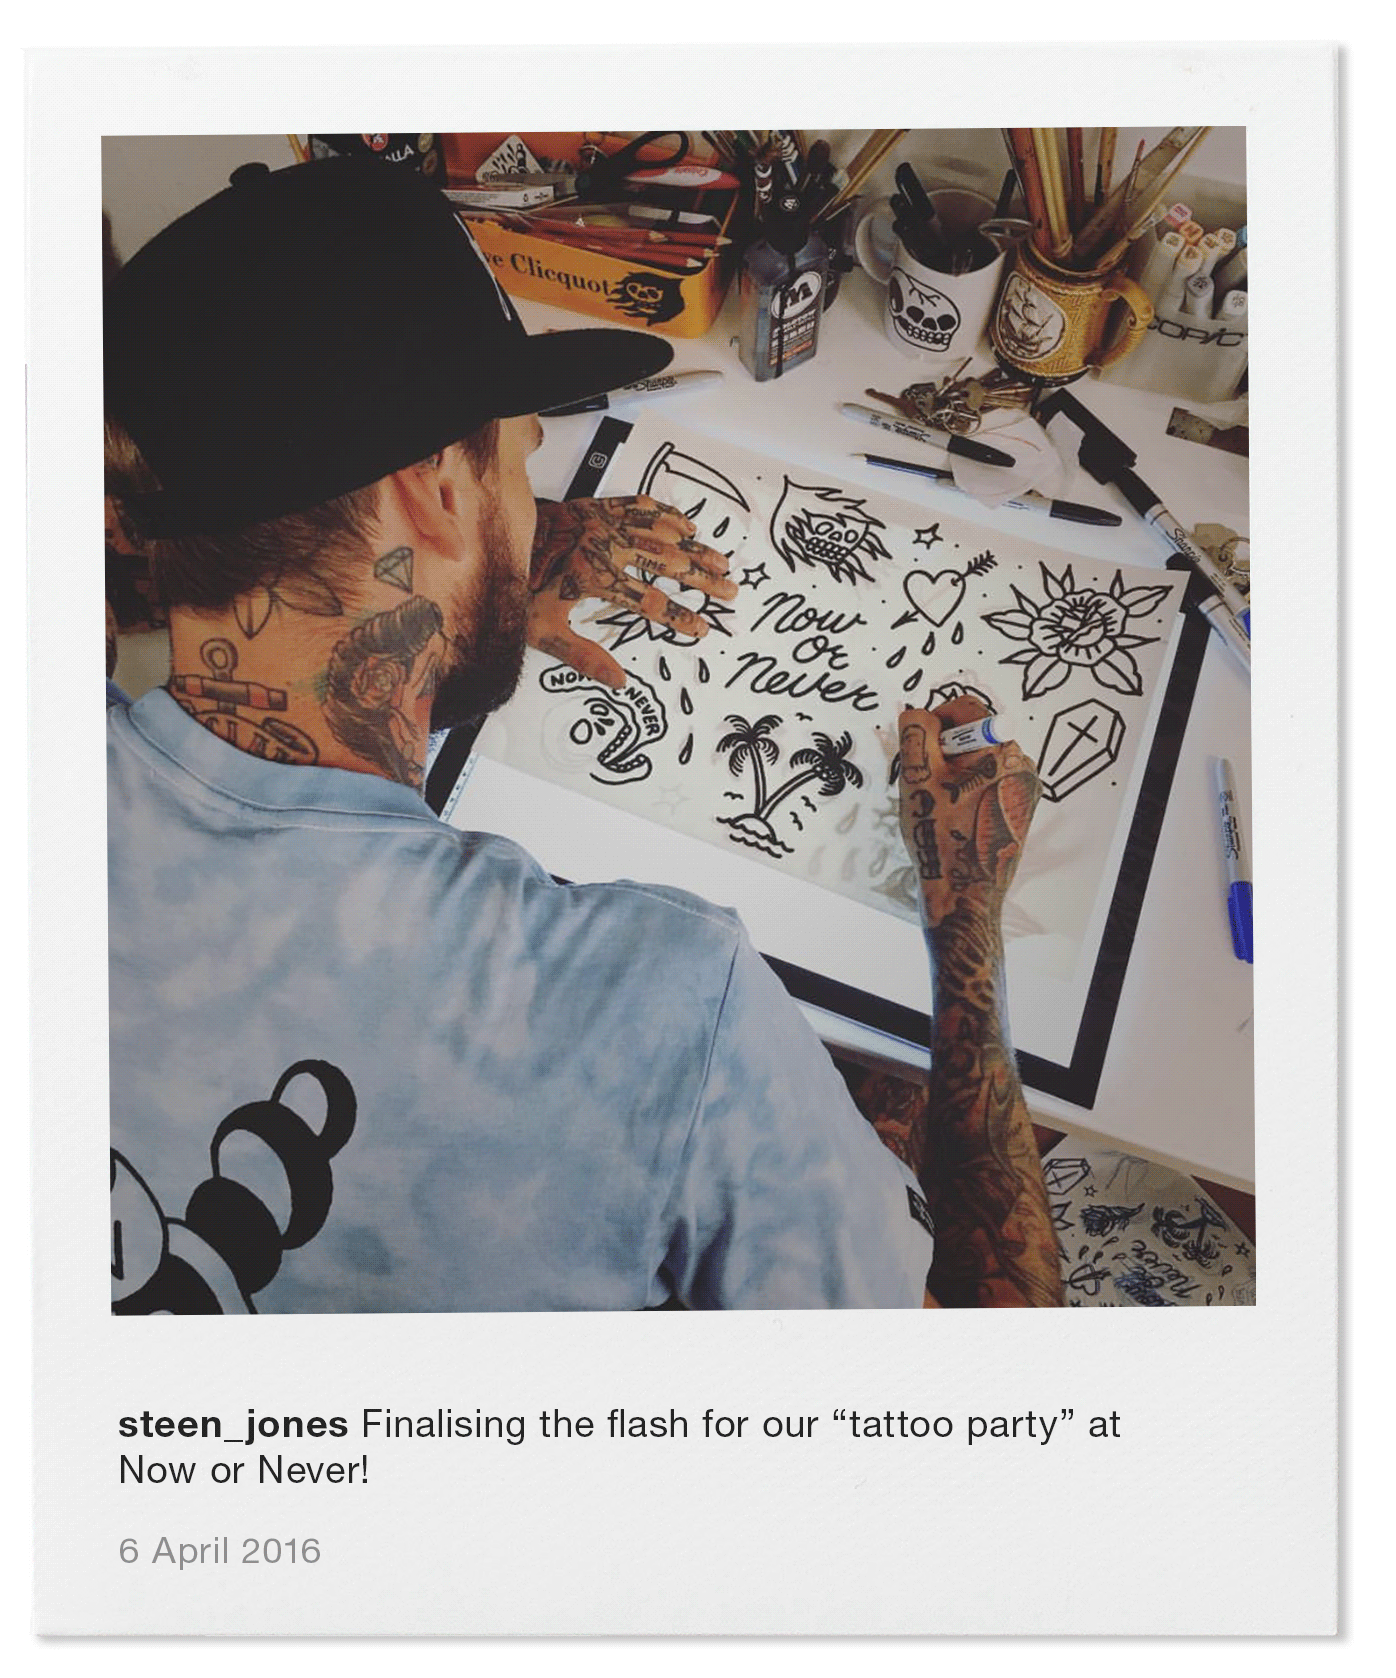 """Finalising the flash for our """"tattoo party"""" at Now or Never!"""